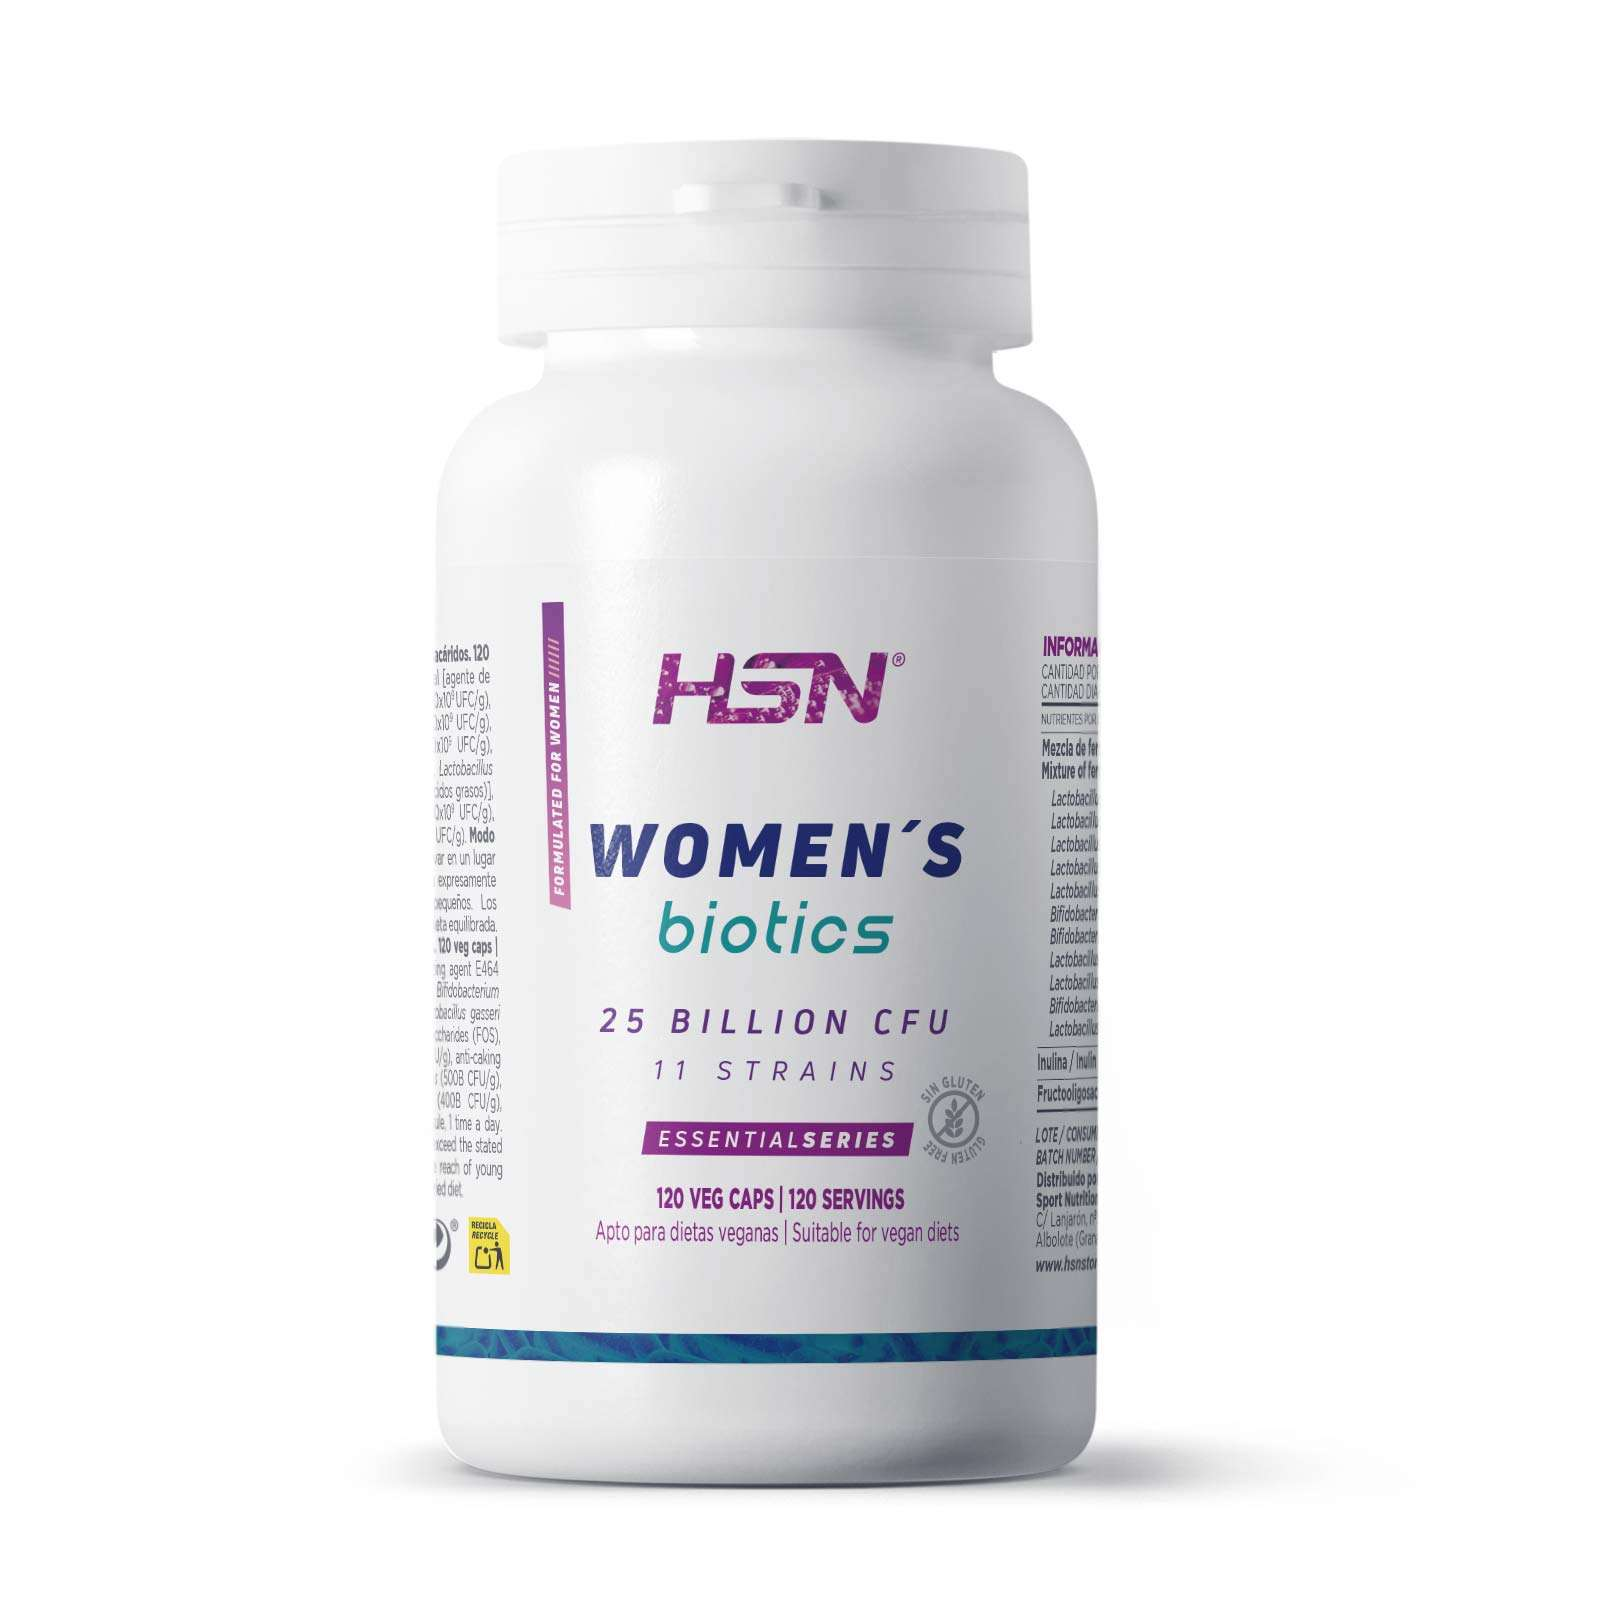 WOMEN'S BIOTICS 25B UFC - SPECIAL WOMAN